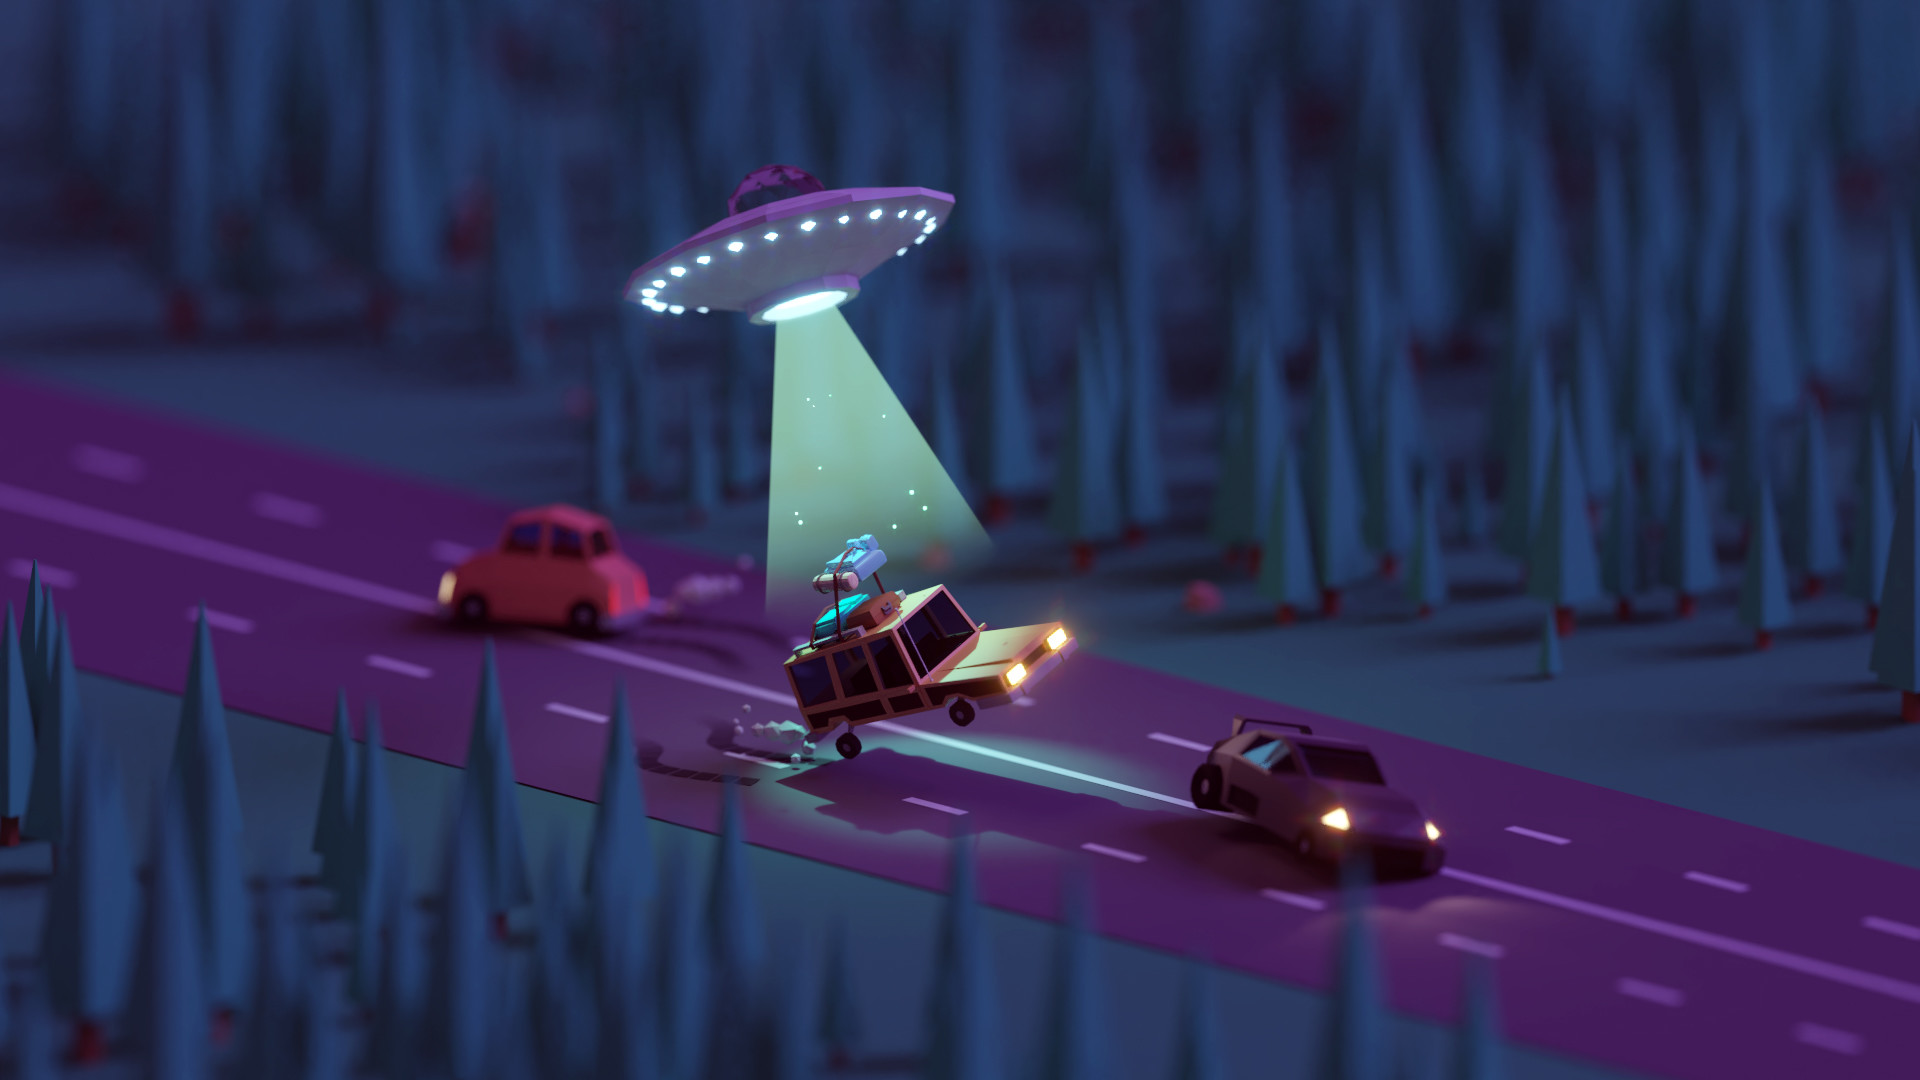 General 1920x1080 Mohamed Chahin render geometry nature forest trees street car aliens night macro alien abduction flying saucers